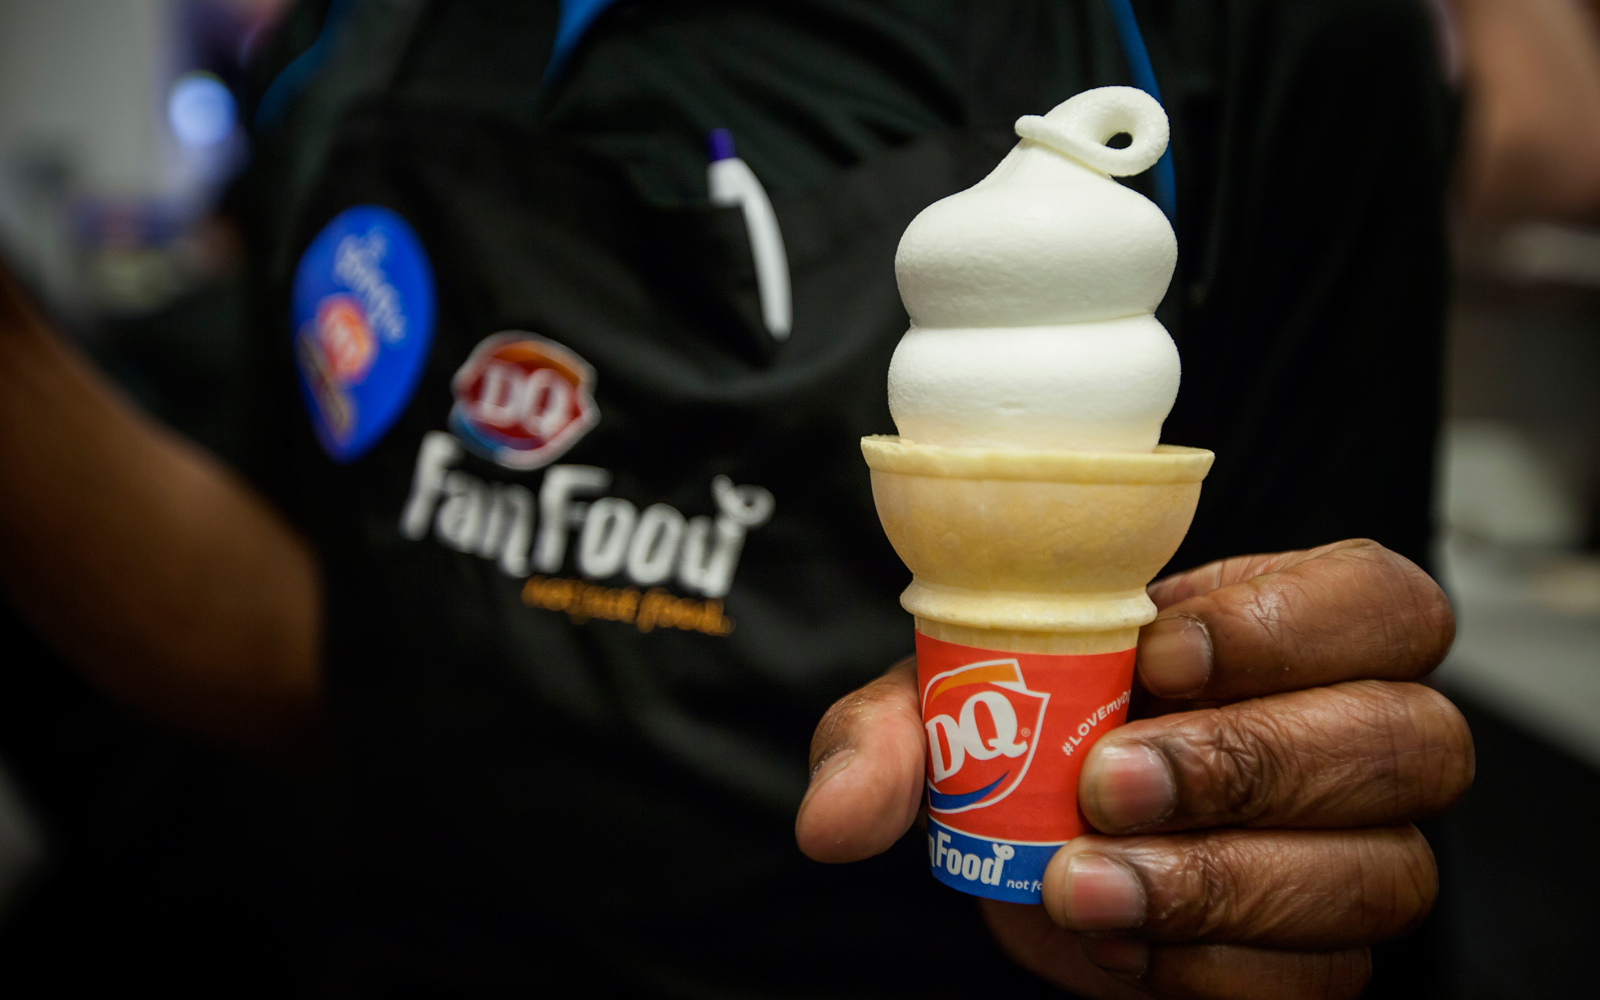 Free Cone Day: How to Get Free Dairy Queen Ice Cream